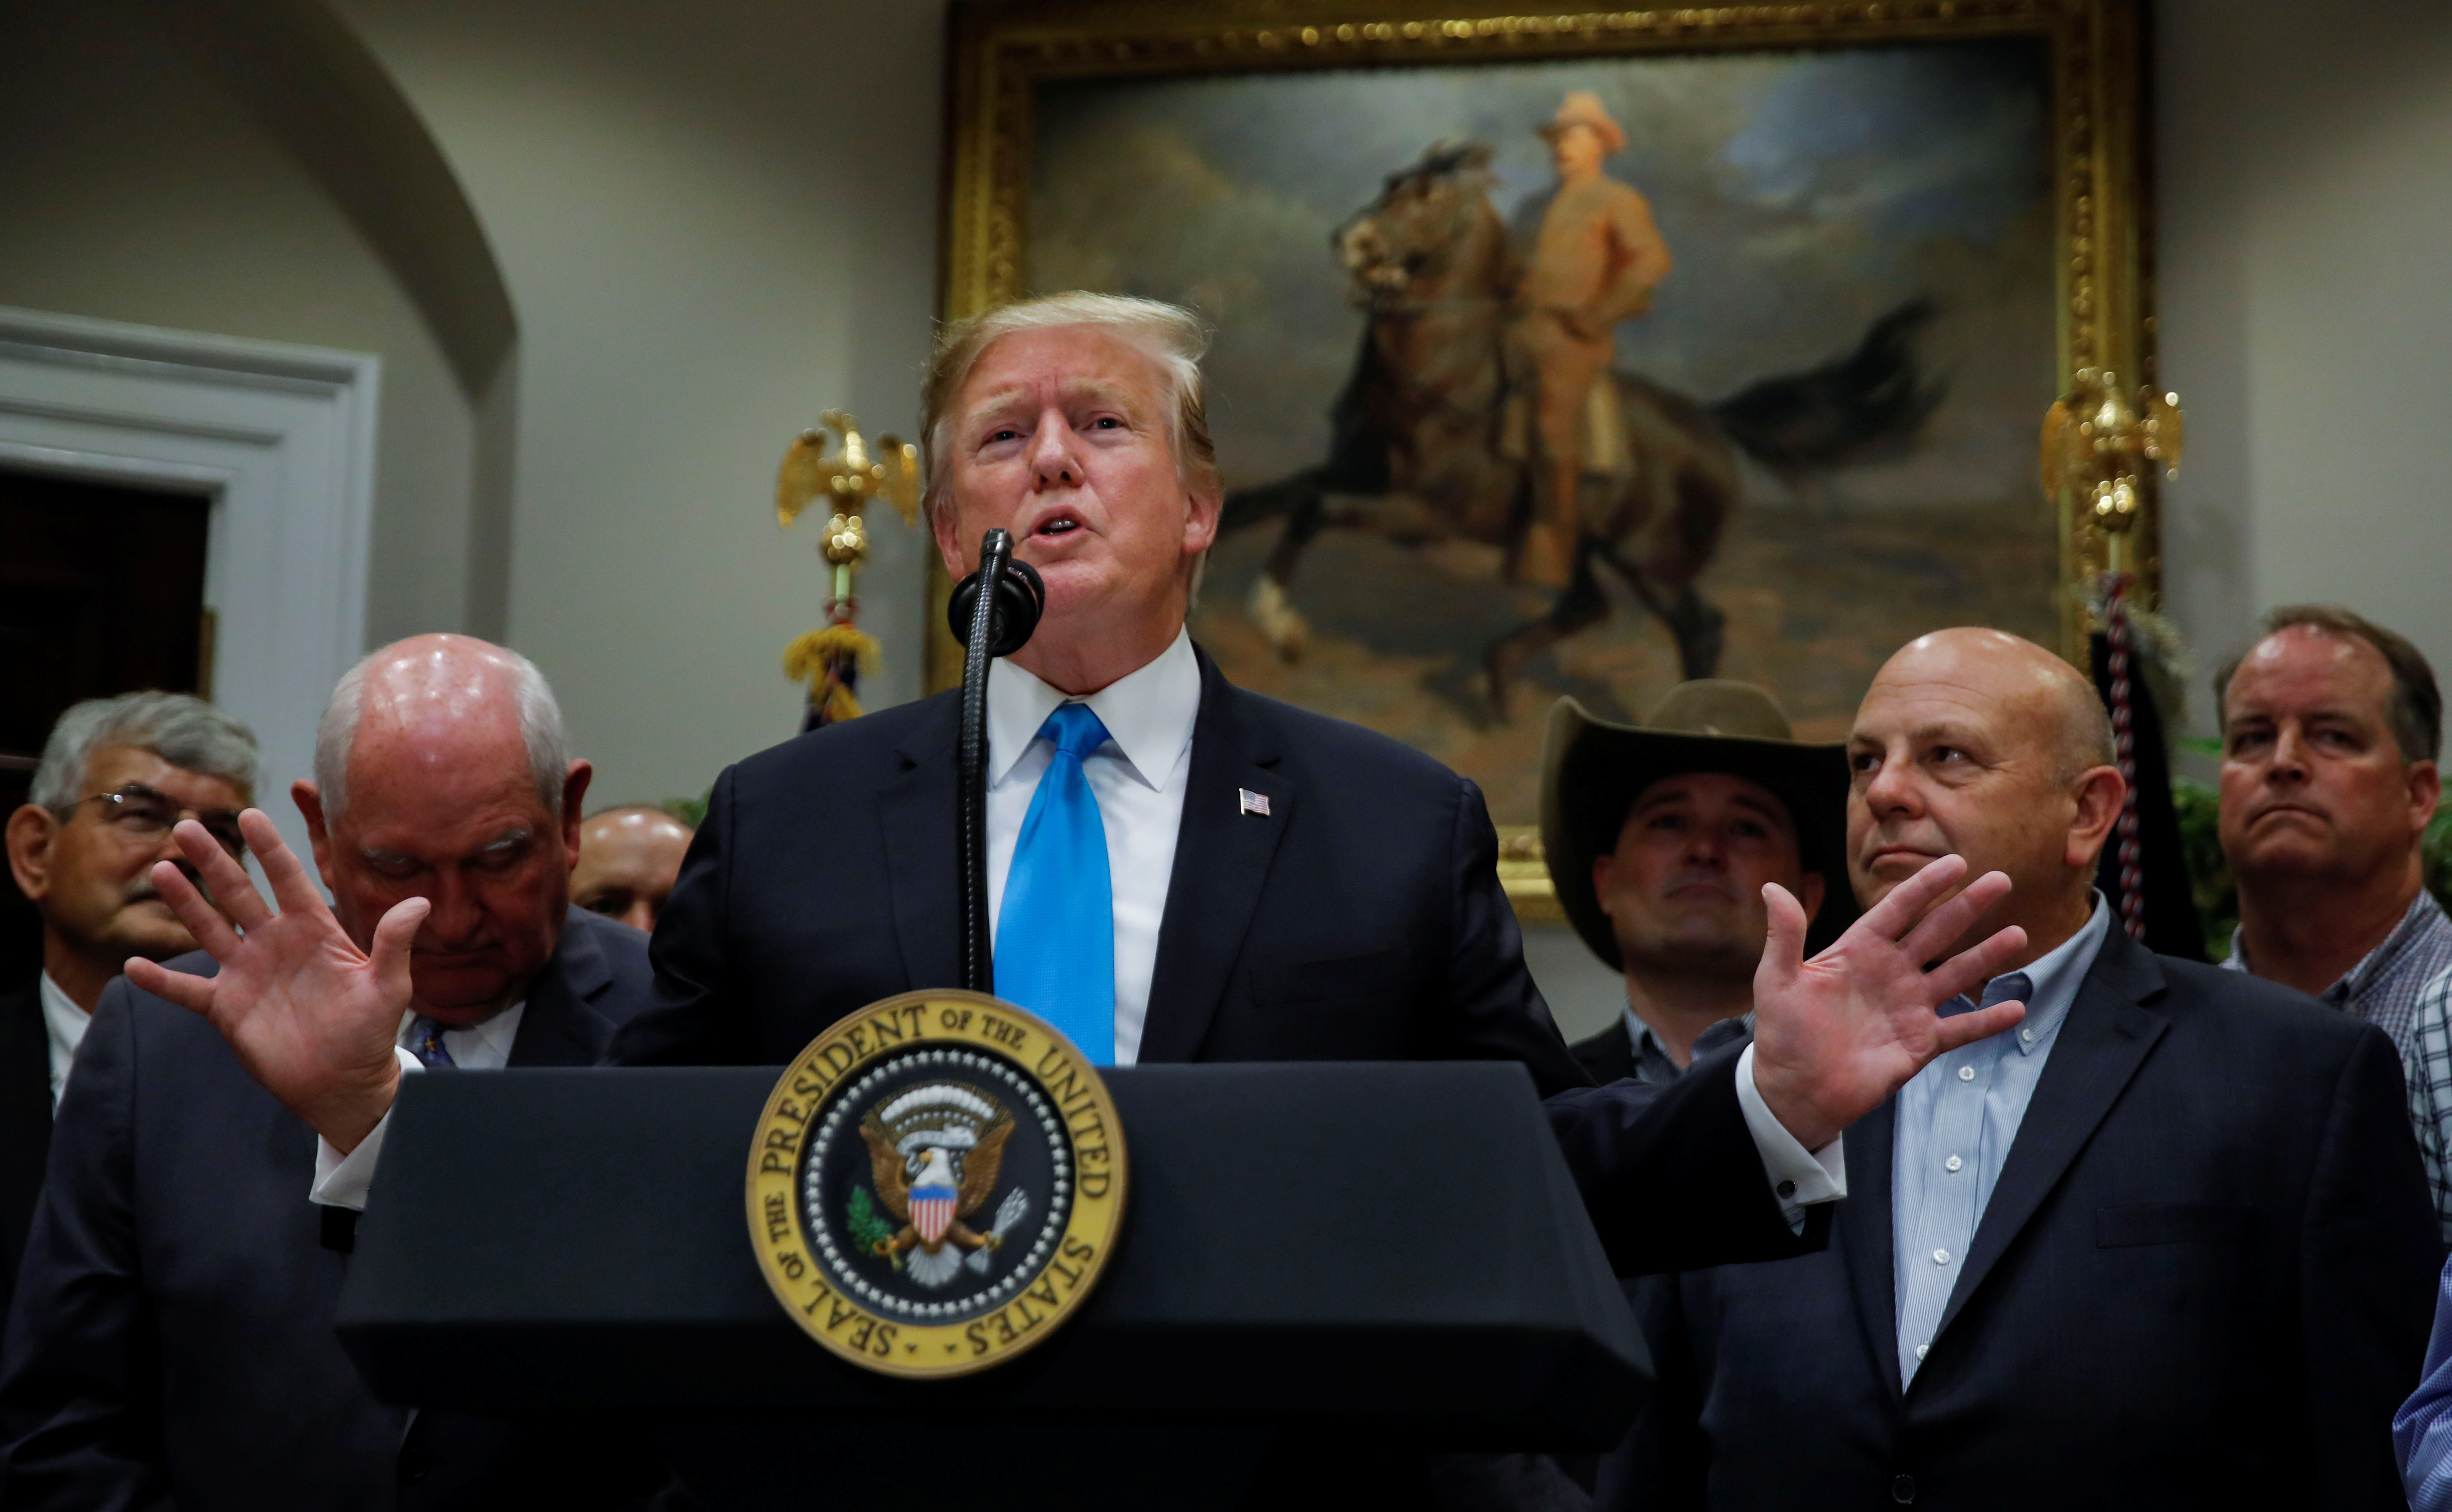 US President Donald Trump speaks to reporters at the White House on Thursday during an event devoted to 'America's farmers and ranchers'. Photo: Reuters